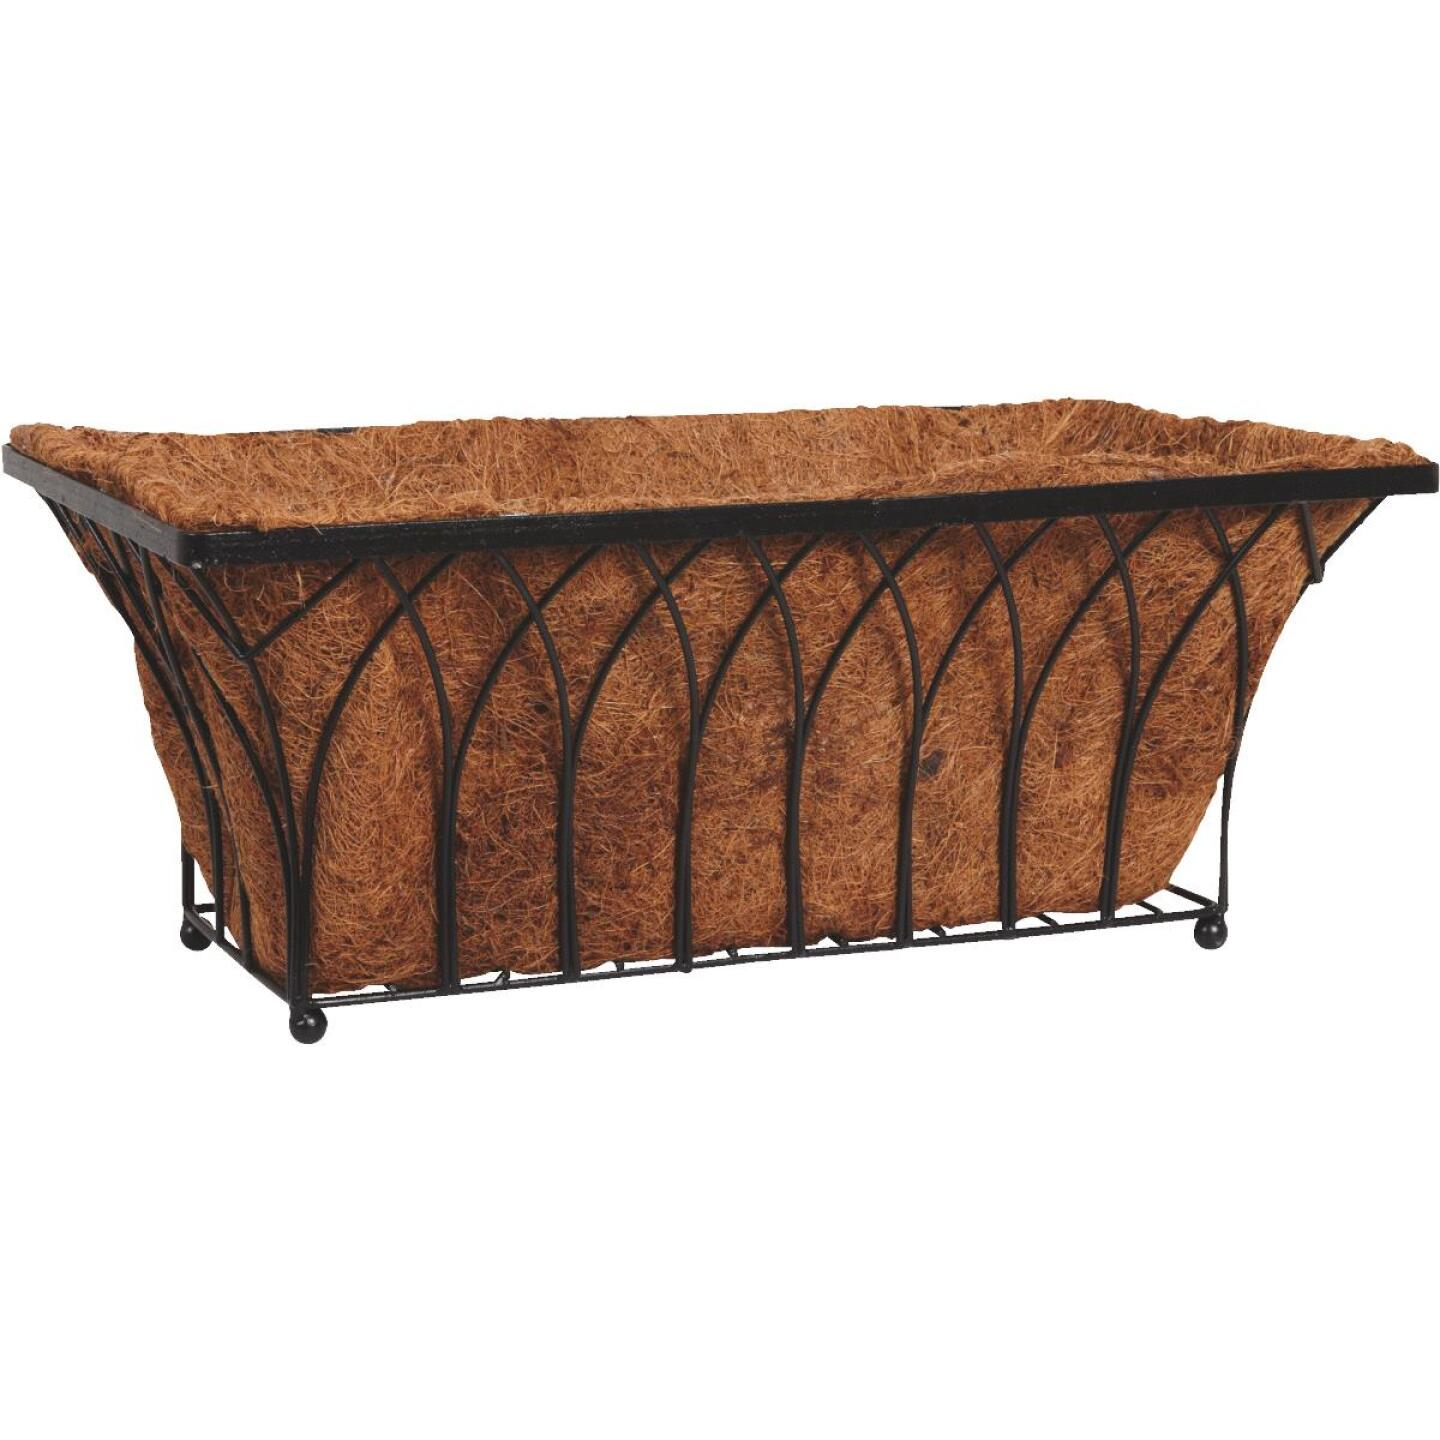 Best Garden 11 In. H x 22 In. Steel Rod Black Planter Image 1